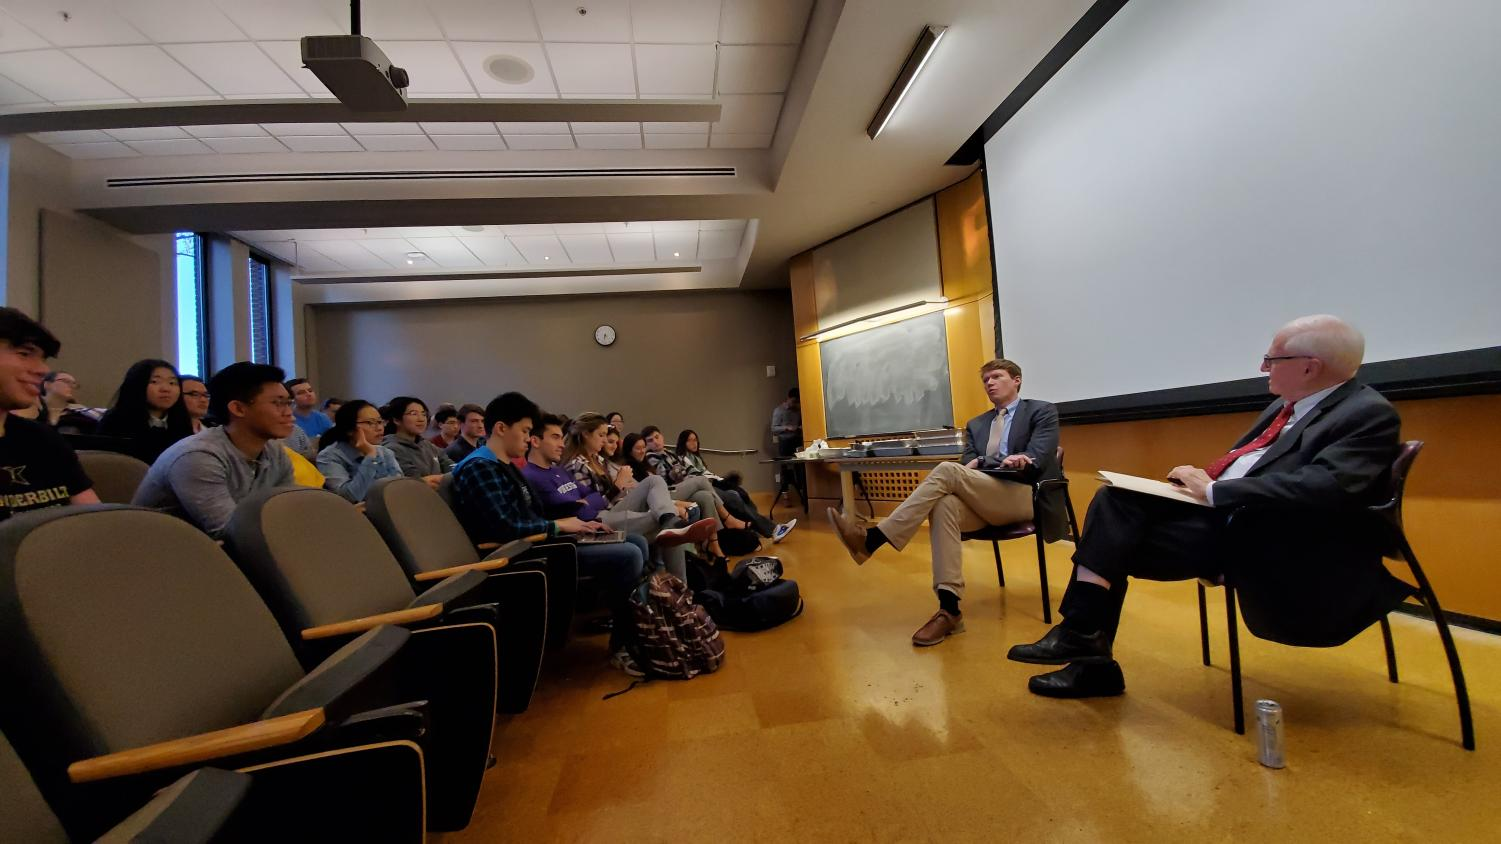 Timothy Meyer, Vanderbilt Professor of Law (left) and Claude Barfield, AEI resident scholar (right) discussing US-China trade relations at the event Nov. 5 in Buttrick 101. (Photo courtesy Jacob Schroeder)